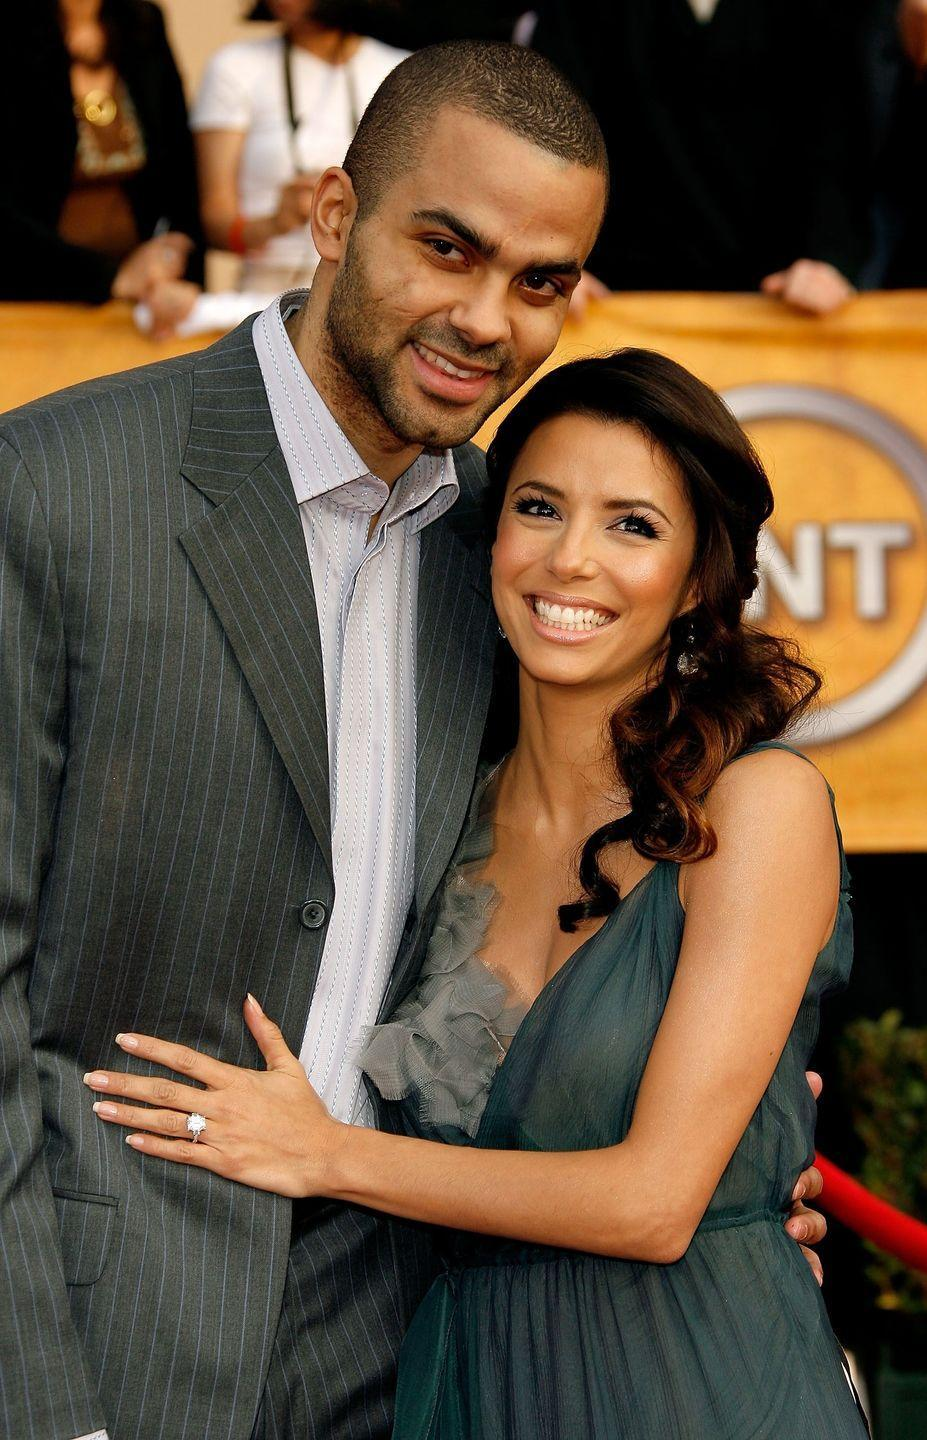 """<p><a href=""""http://people.com/celebrity/eva-longoria-and-tony-parker-marry-in-a-french-church/"""" rel=""""nofollow noopener"""" target=""""_blank"""" data-ylk=""""slk:Eva Longoria and Tony Parker"""" class=""""link rapid-noclick-resp"""">Eva Longoria and Tony Parker</a> got married at the Church of Saint Germain L'Auxerrois in Paris in July 2007. Longoria wore a couture Angel Sanchez mermaid gown, and guests included Jessica Alba and <em>Desperate Housewives </em>co-stars. Parker and Longoria separated in 2011. </p>"""